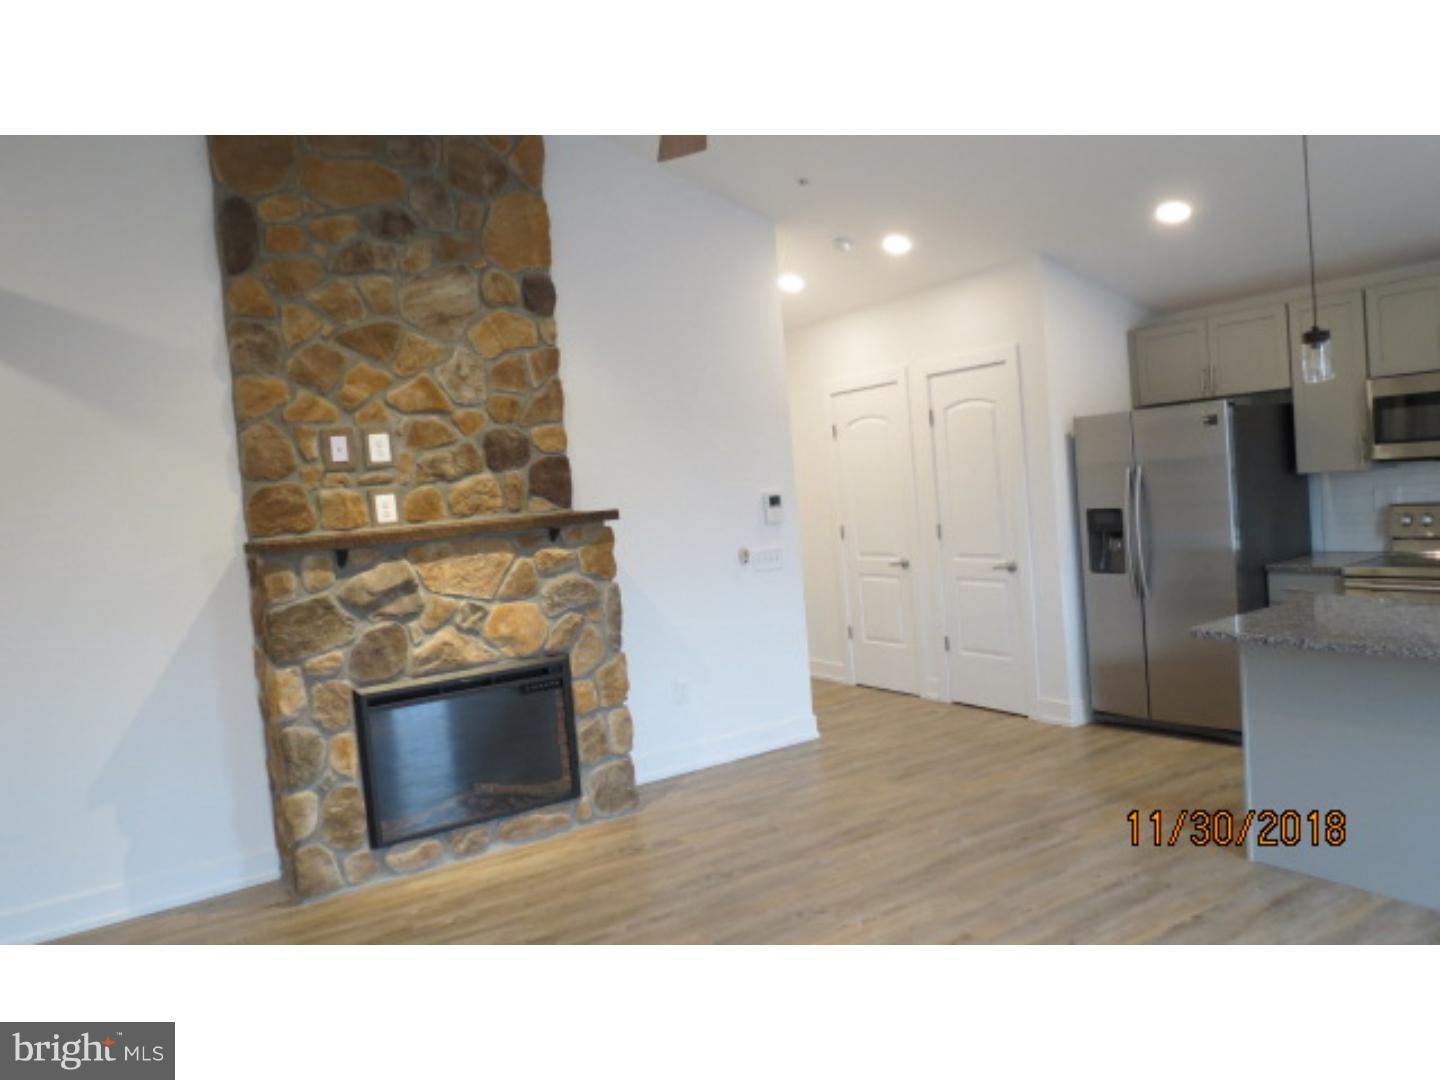 Property for Rent at 221 W MAIN Street Norristown, Pennsylvania 19401 United States